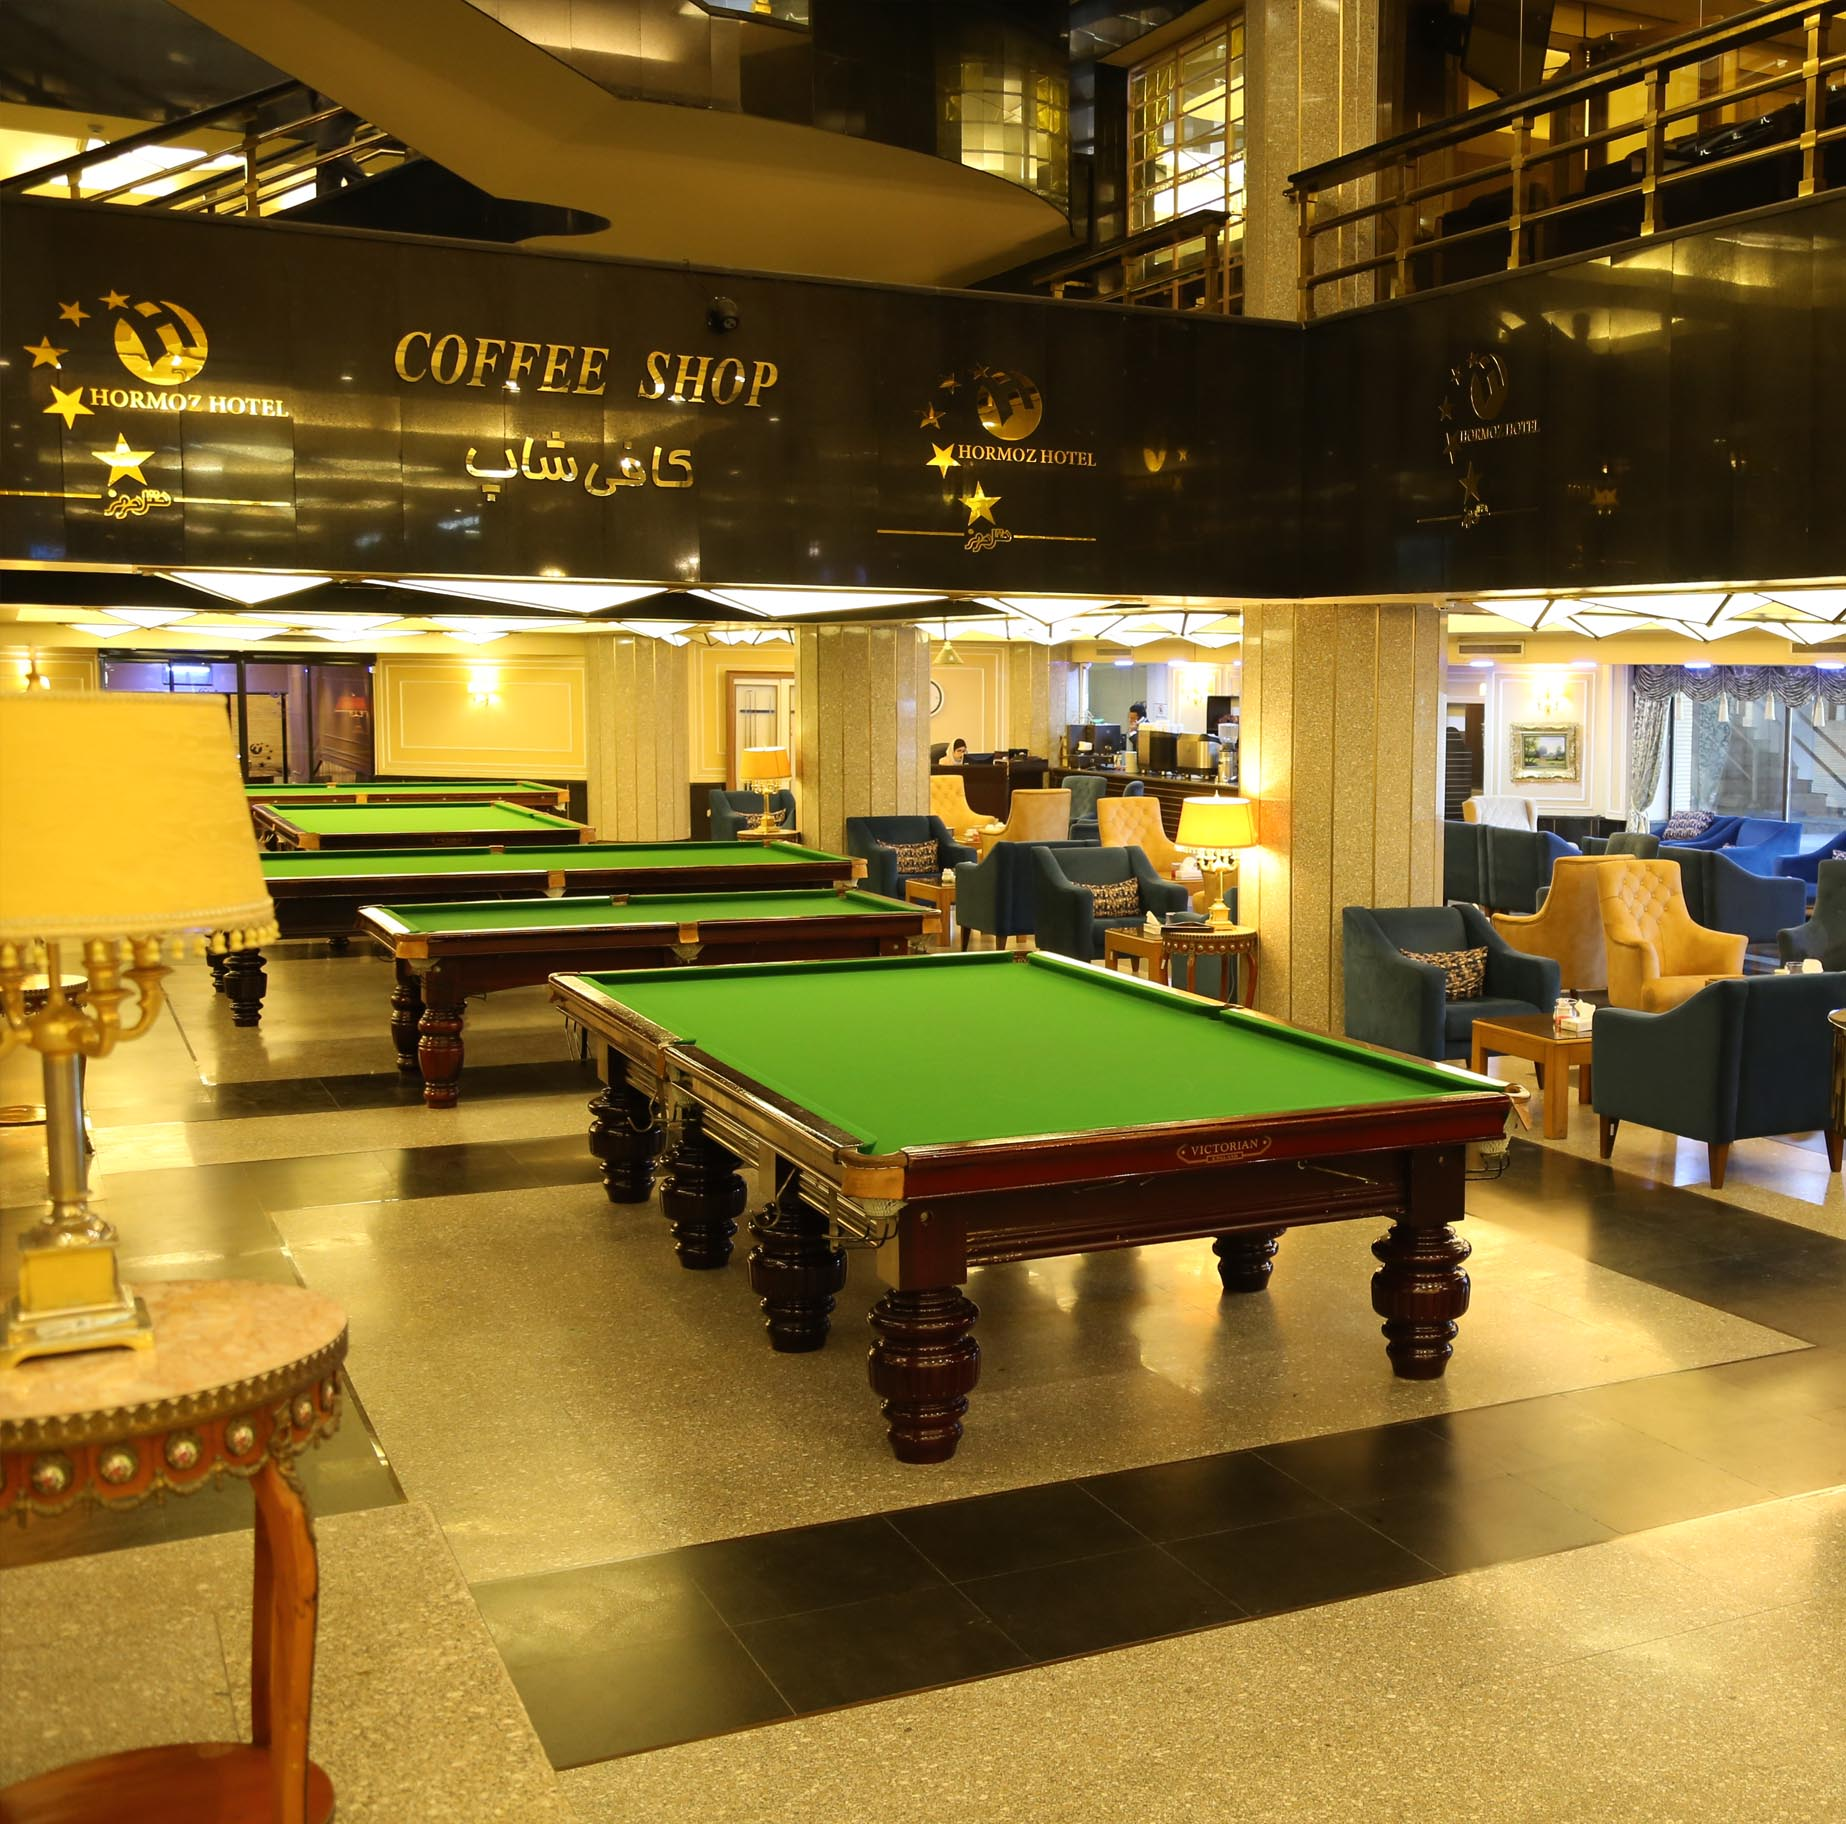 Coffee shop and billiards Hormoz five star hotel in Bandar Abbas